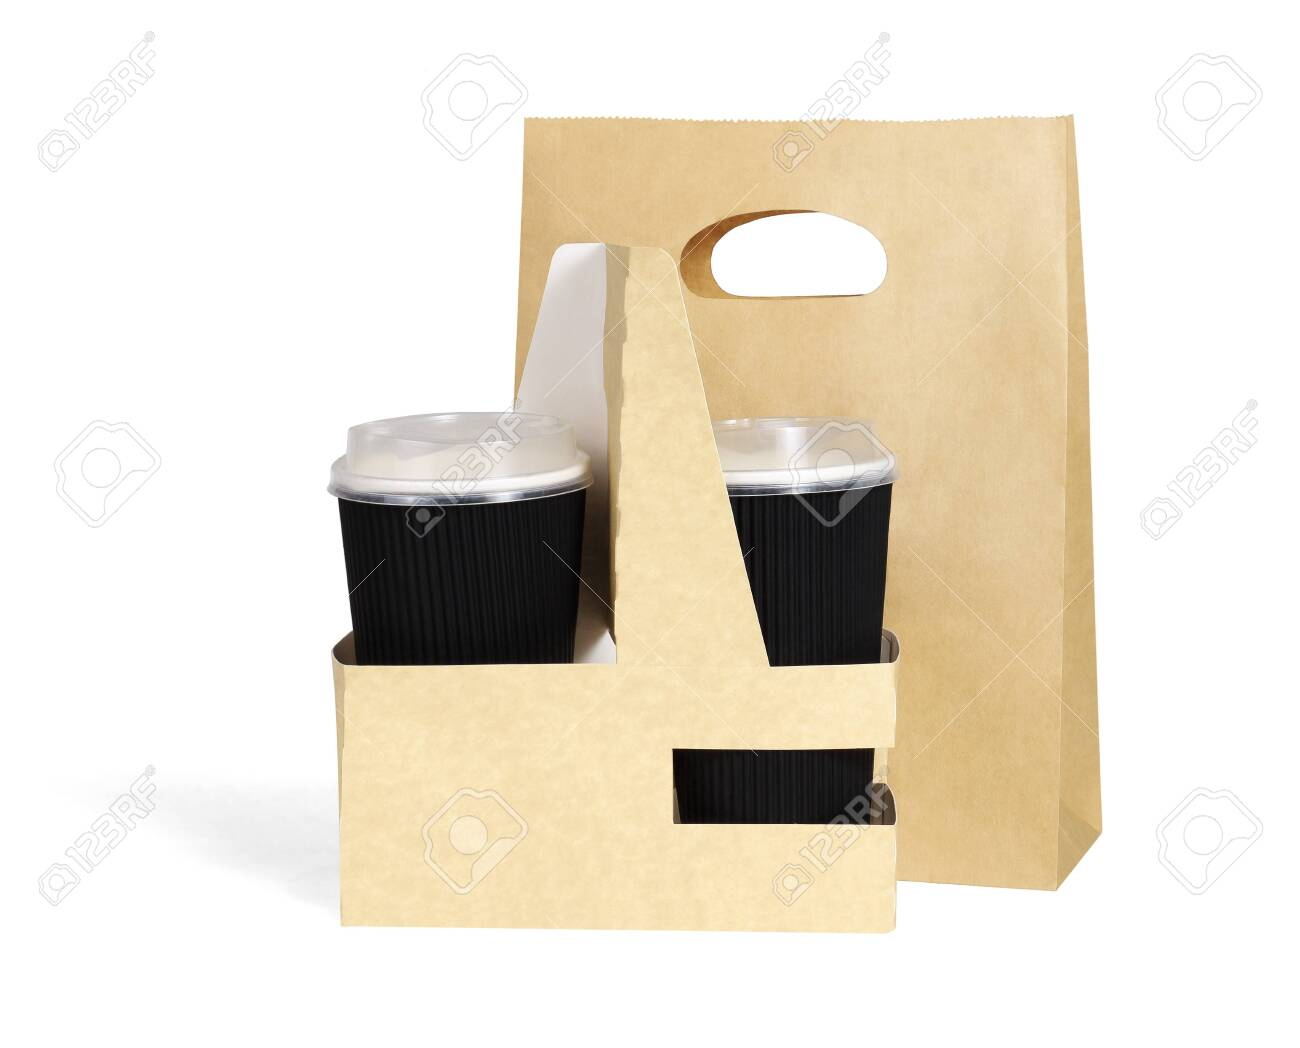 Takeaway Paper Cups and Bag on White Background - 152349302